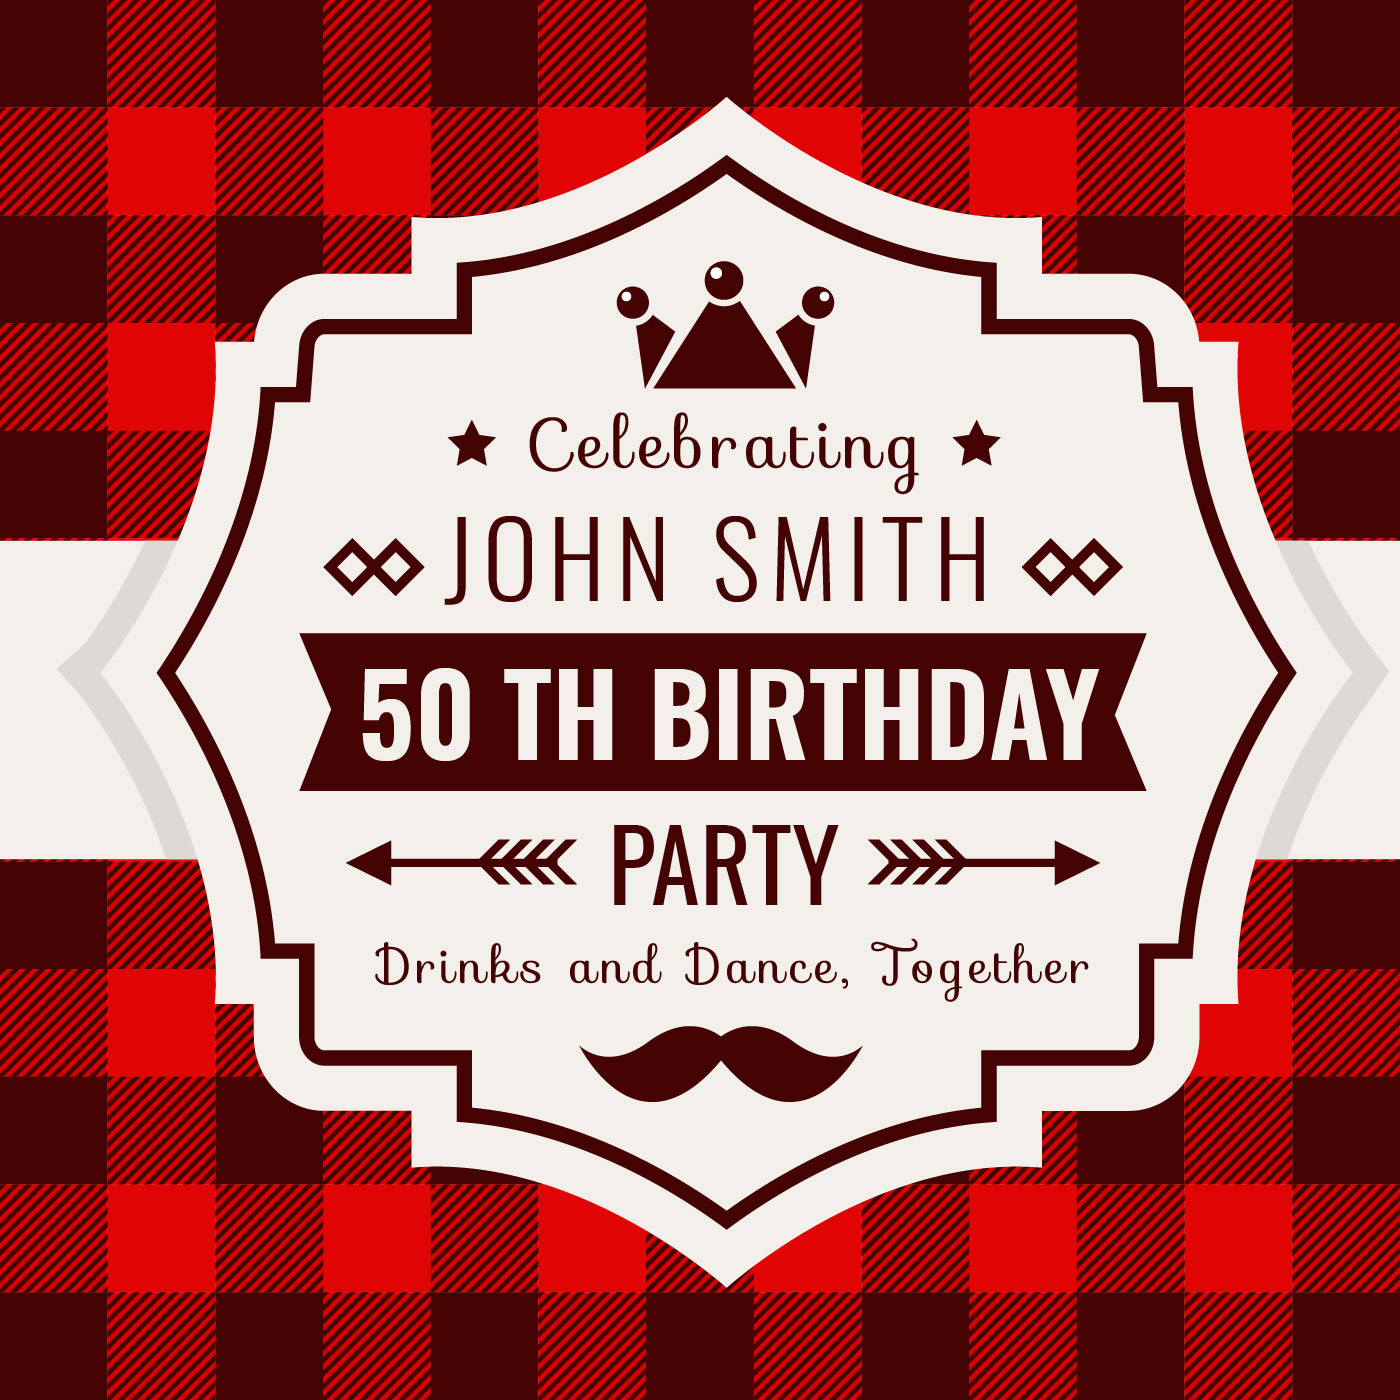 Birthday Invitation Buffalo Plaid Style - Download Free Vector Art ...